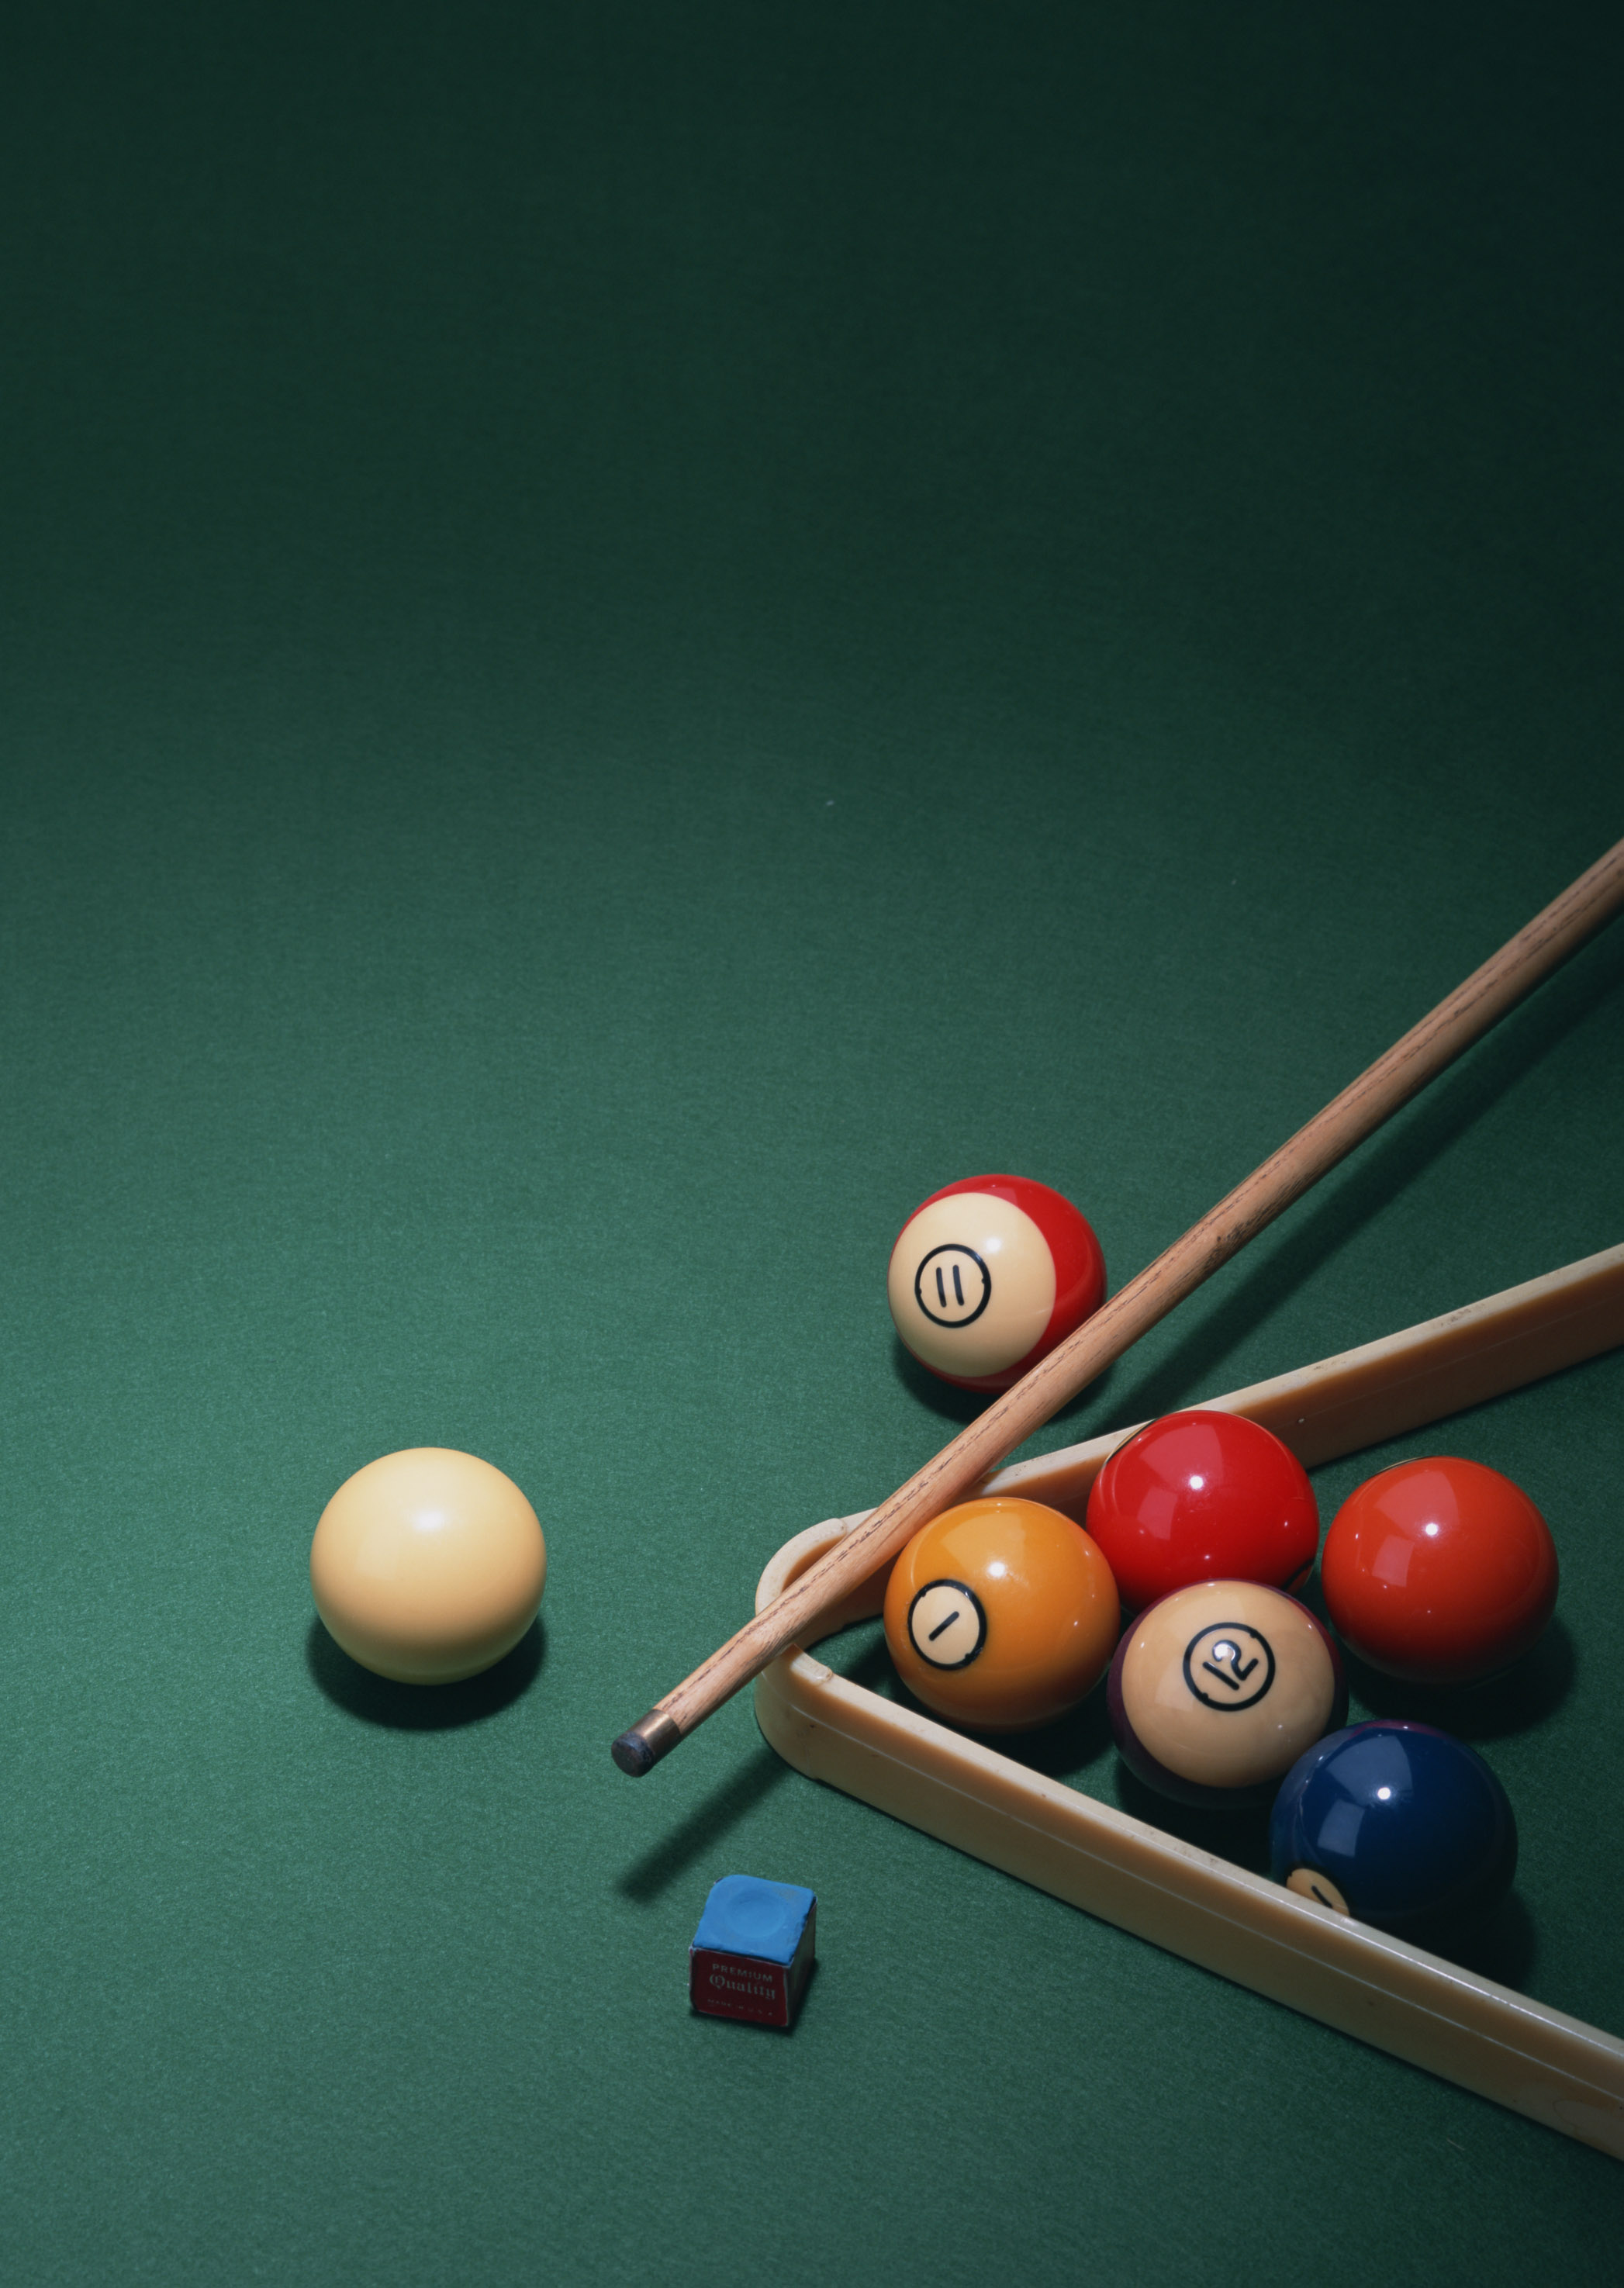 pool table table furniture game equipment background